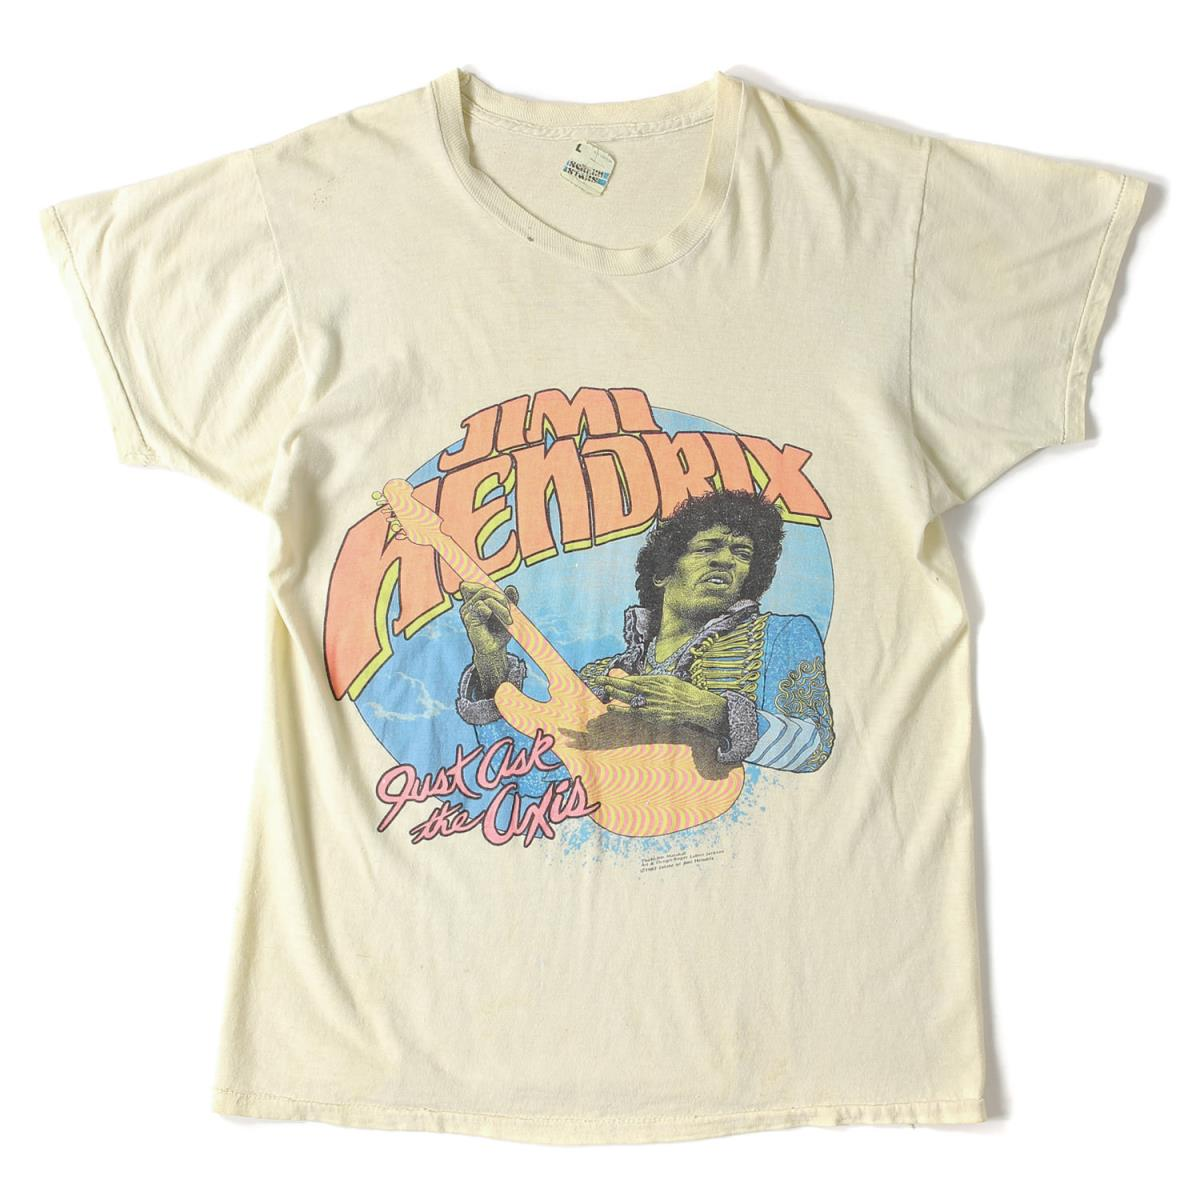 "JIMI HENDRIX(ジミ・ヘンドリックス) 82' ""Just ask the axis"" Tシャツ【K1919】【中古】 ヴィンテージ【あす楽☆対応可】"